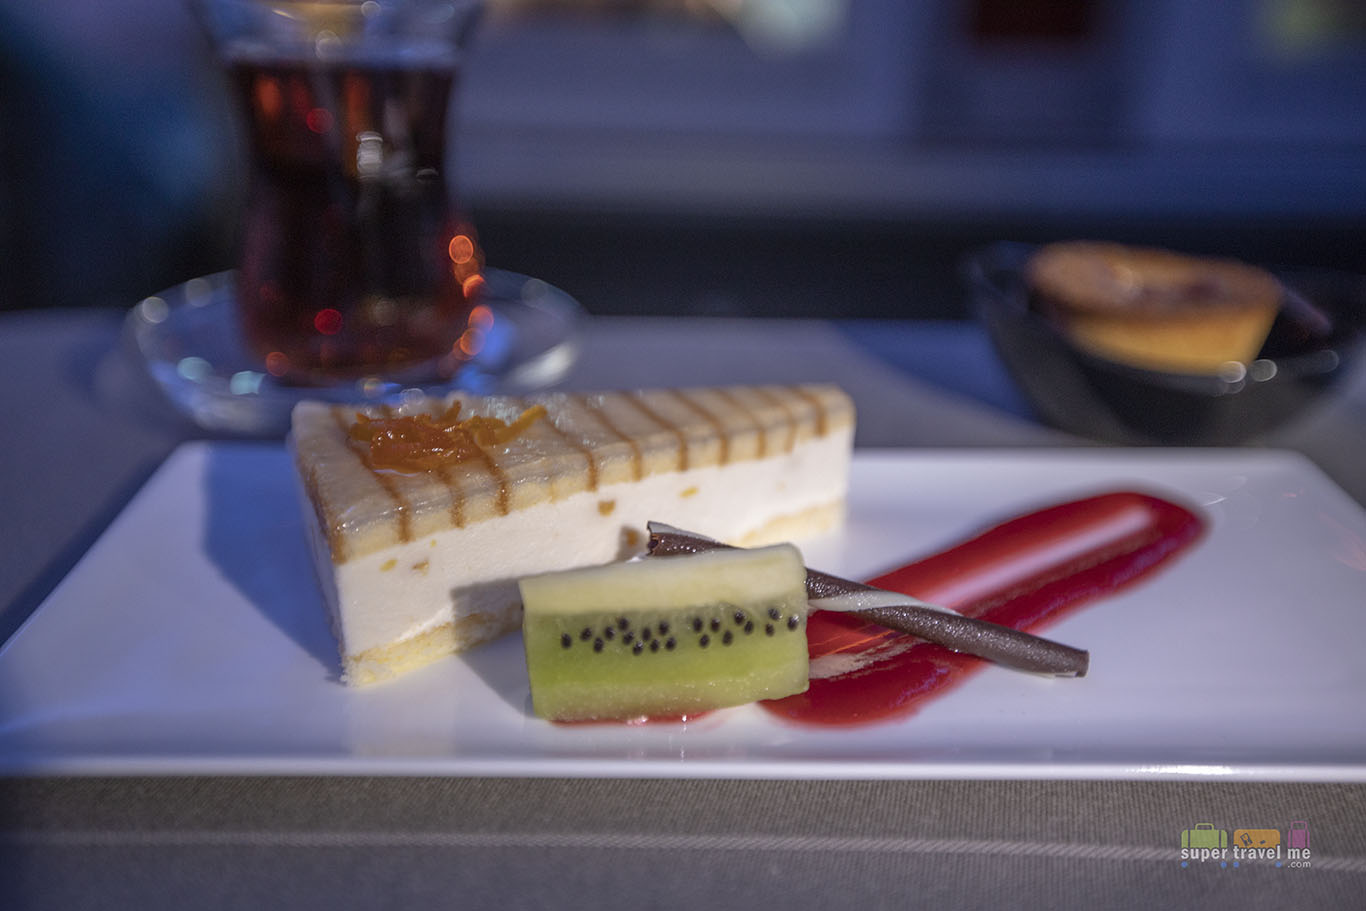 Orange Mousse Cake from the dessert trolley in Turkish Airlines